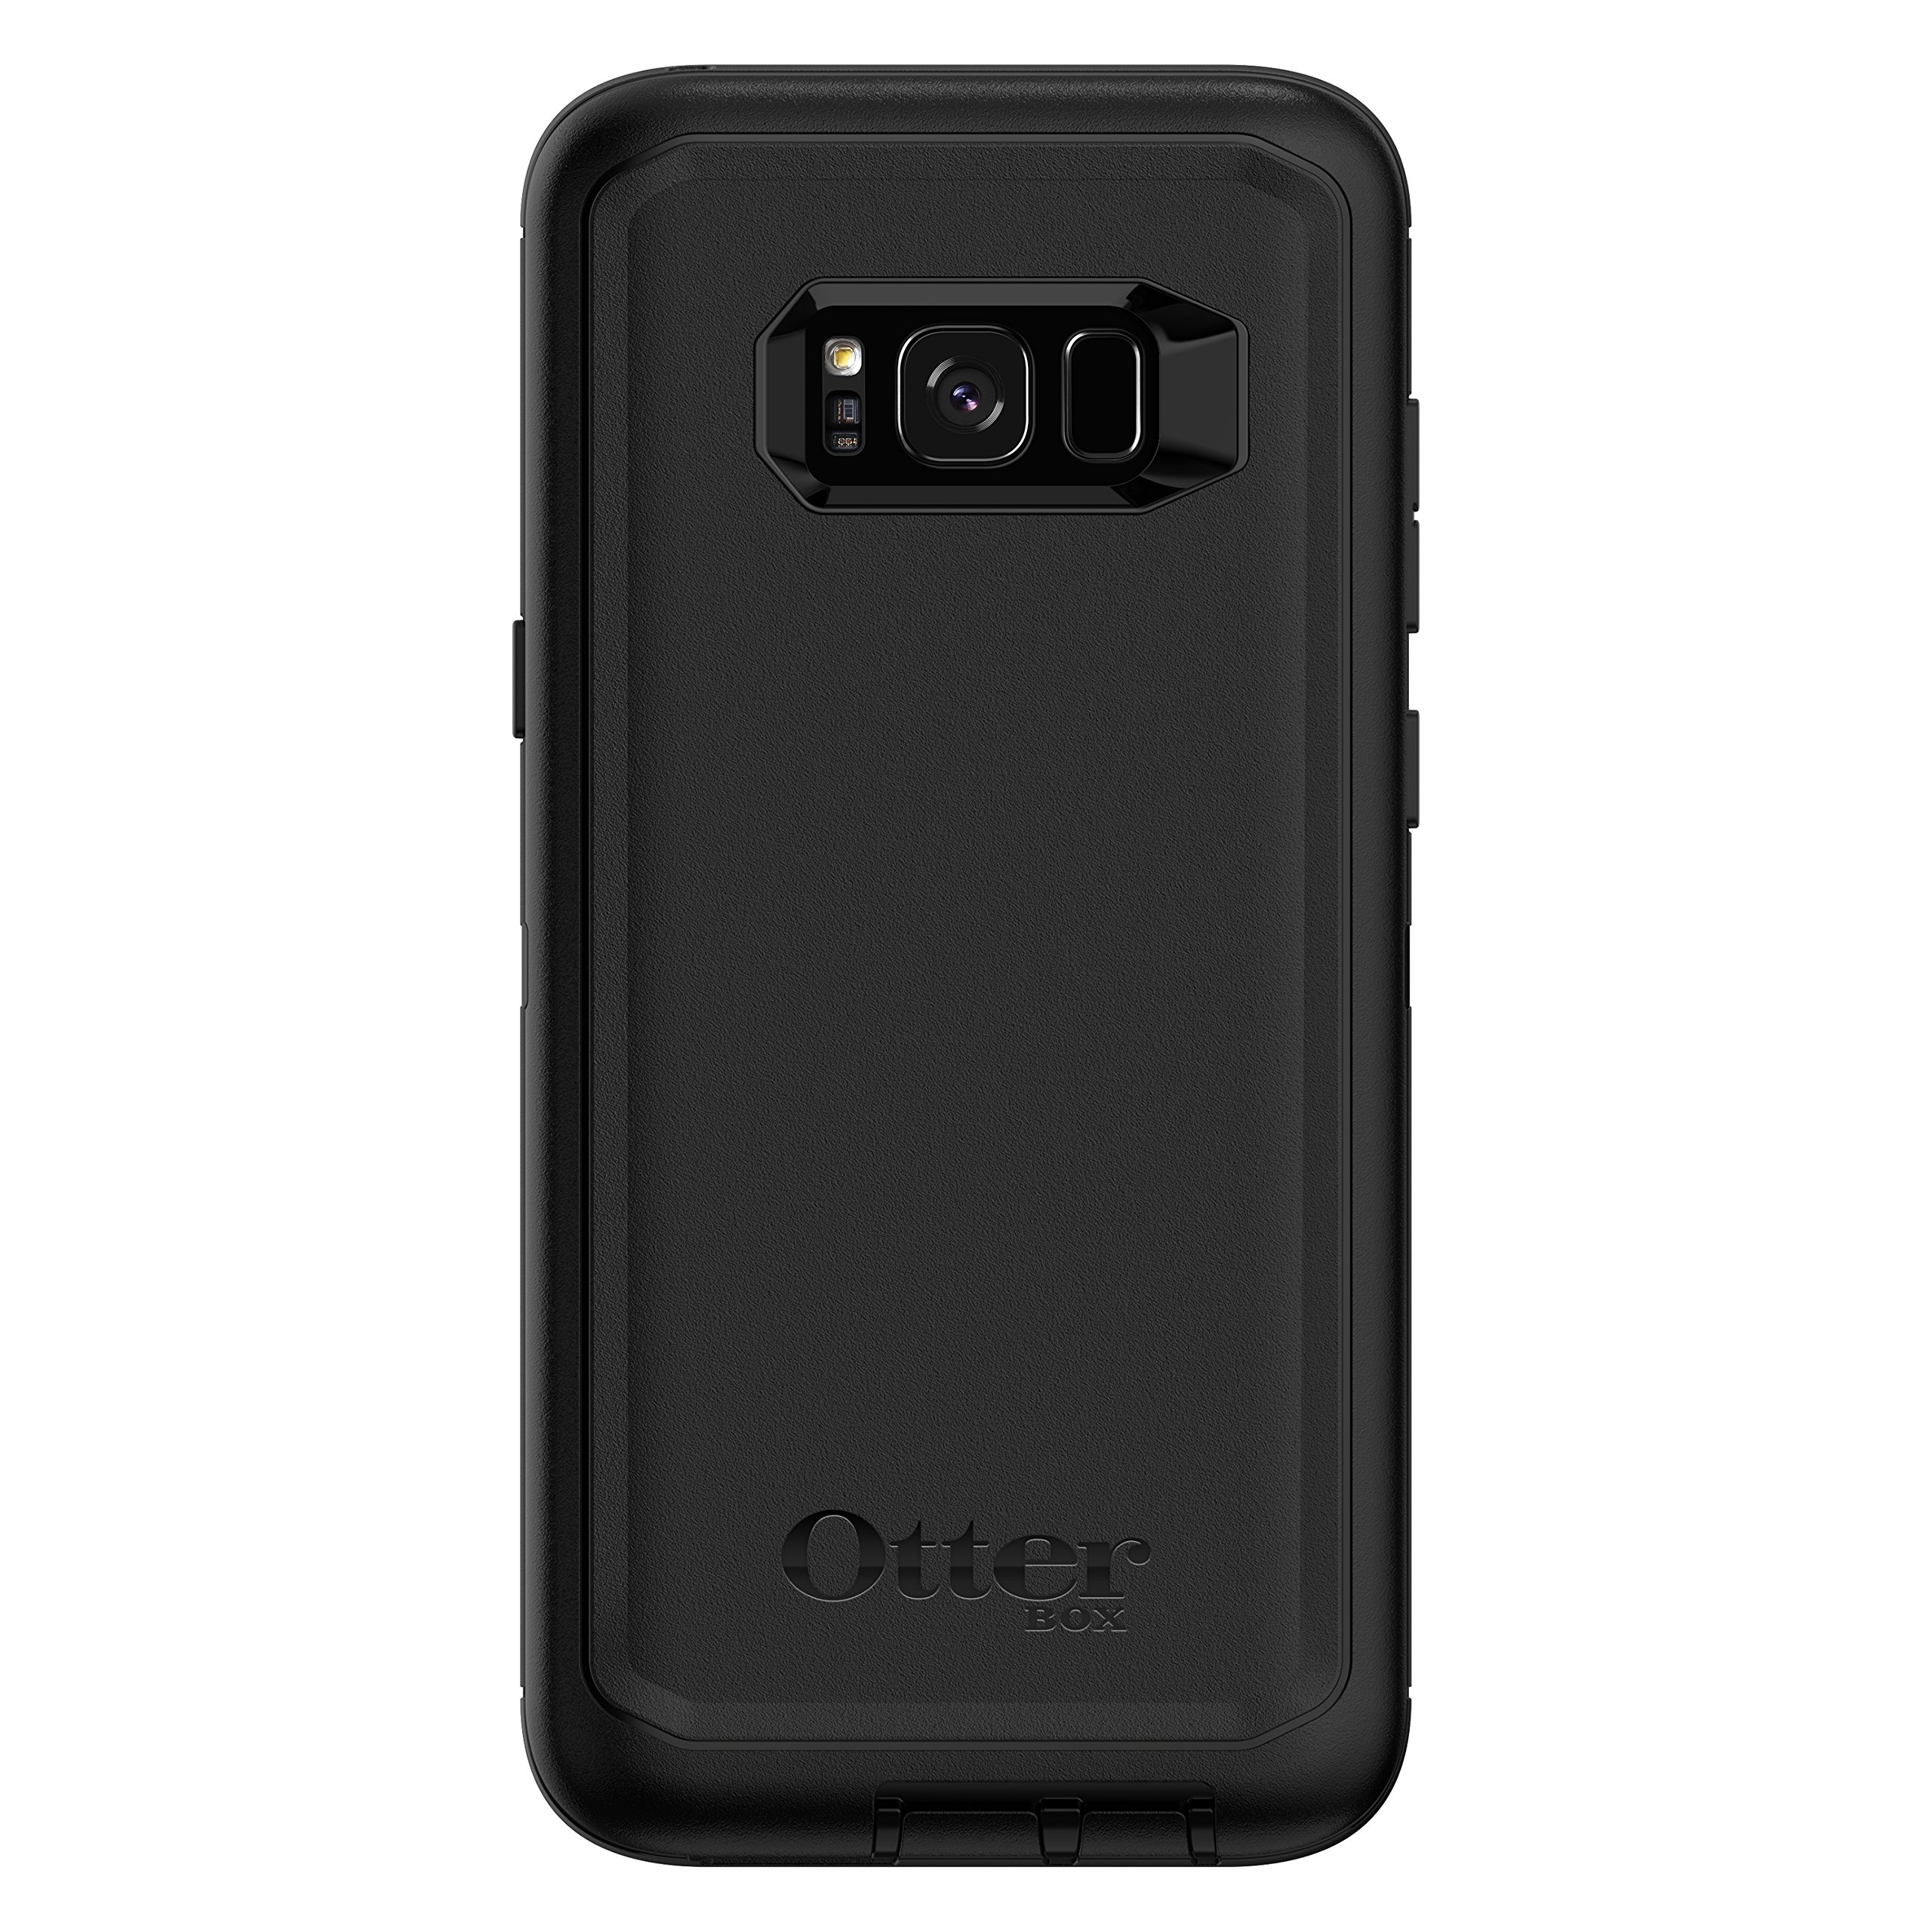 OtterBox Defender Series SCREENLESS Edition for Samsung Galaxy S8+ - Frustration Free Packaging - Black by OtterBox